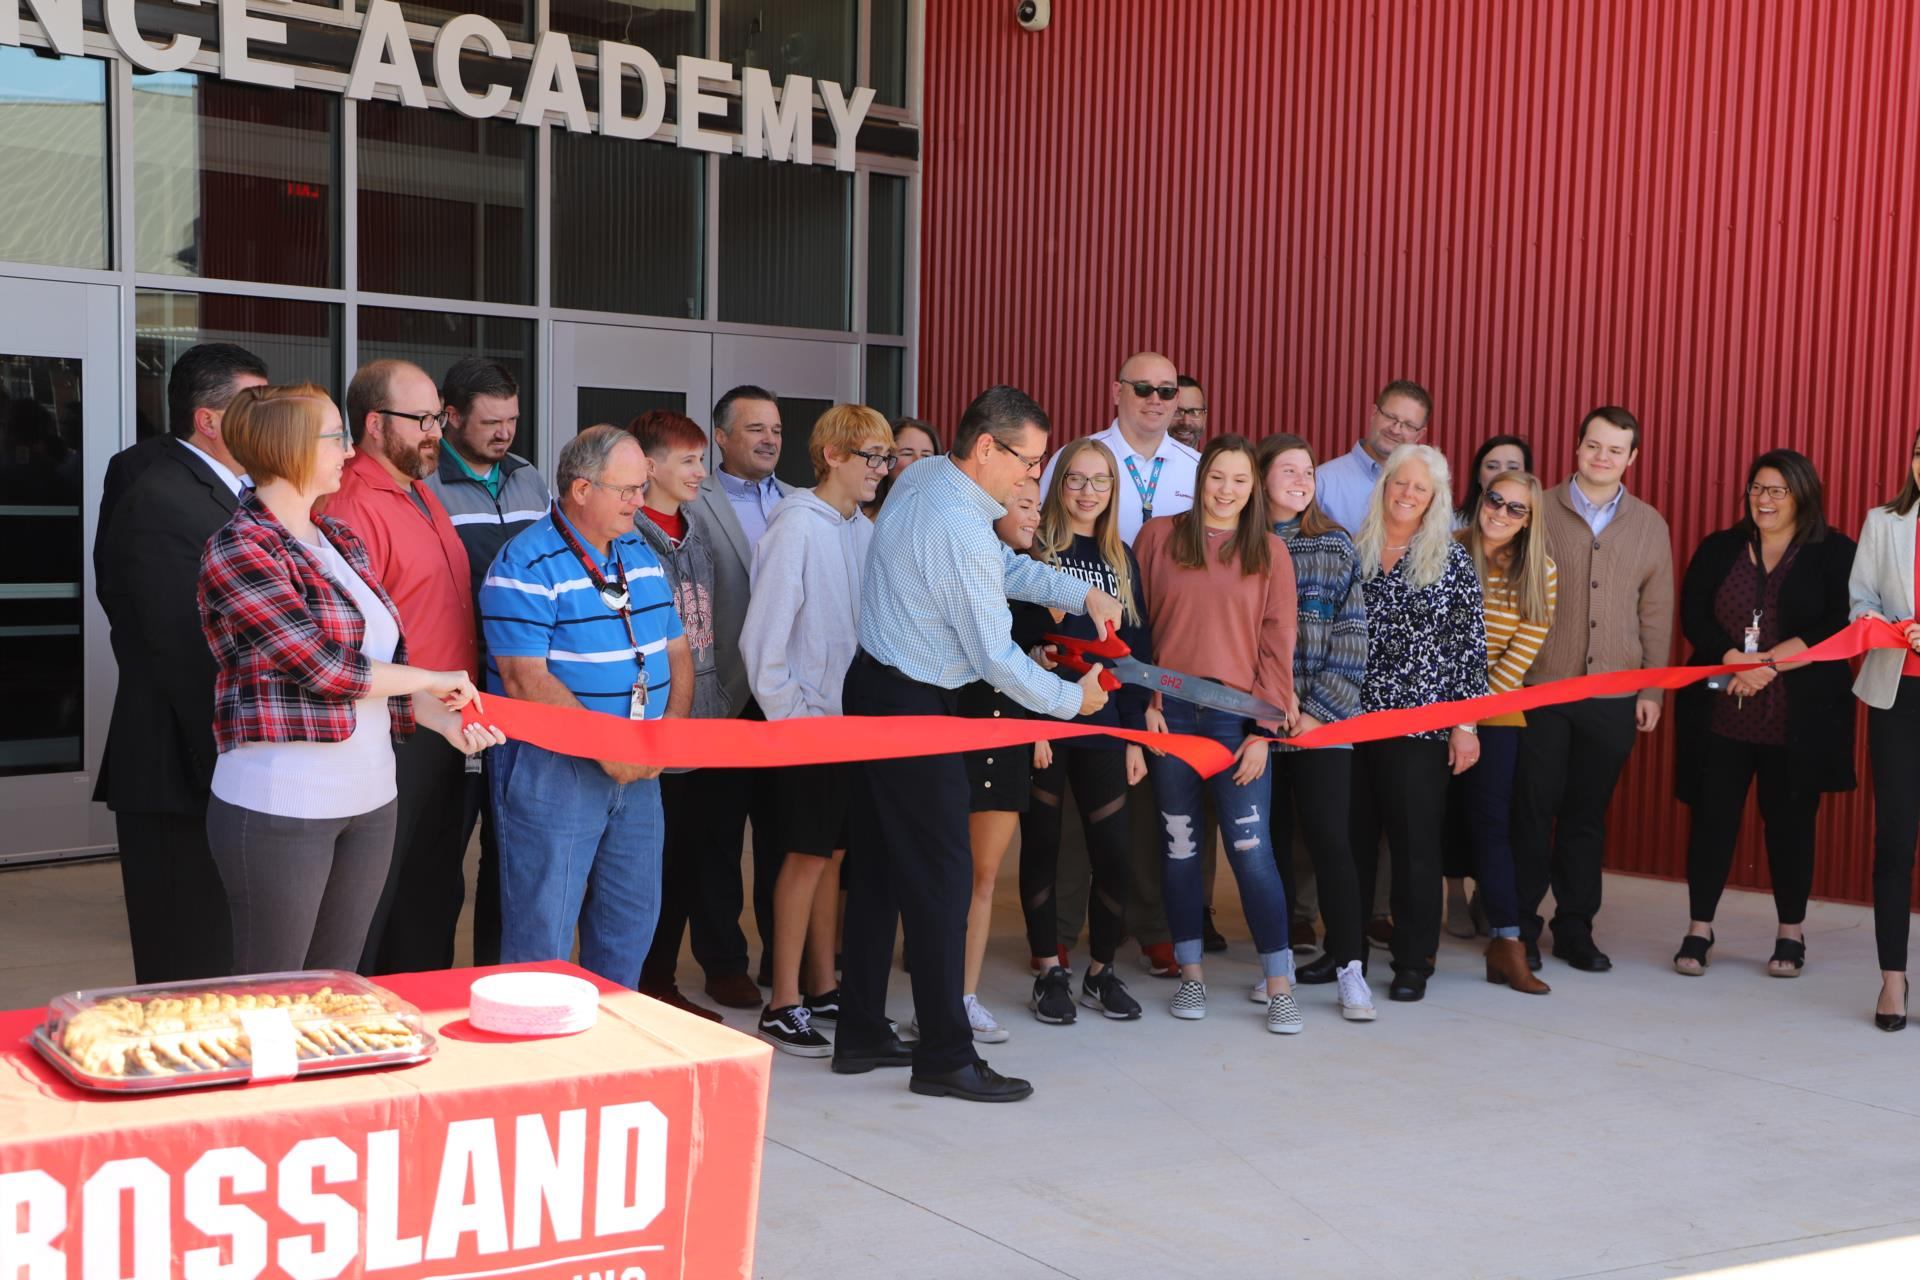 Science Department Chair Tom Garner, backed by students, Science teachers, architects, builders, and MPS administrators, cuts the ribbon of the new 27,385sf Science Academy.